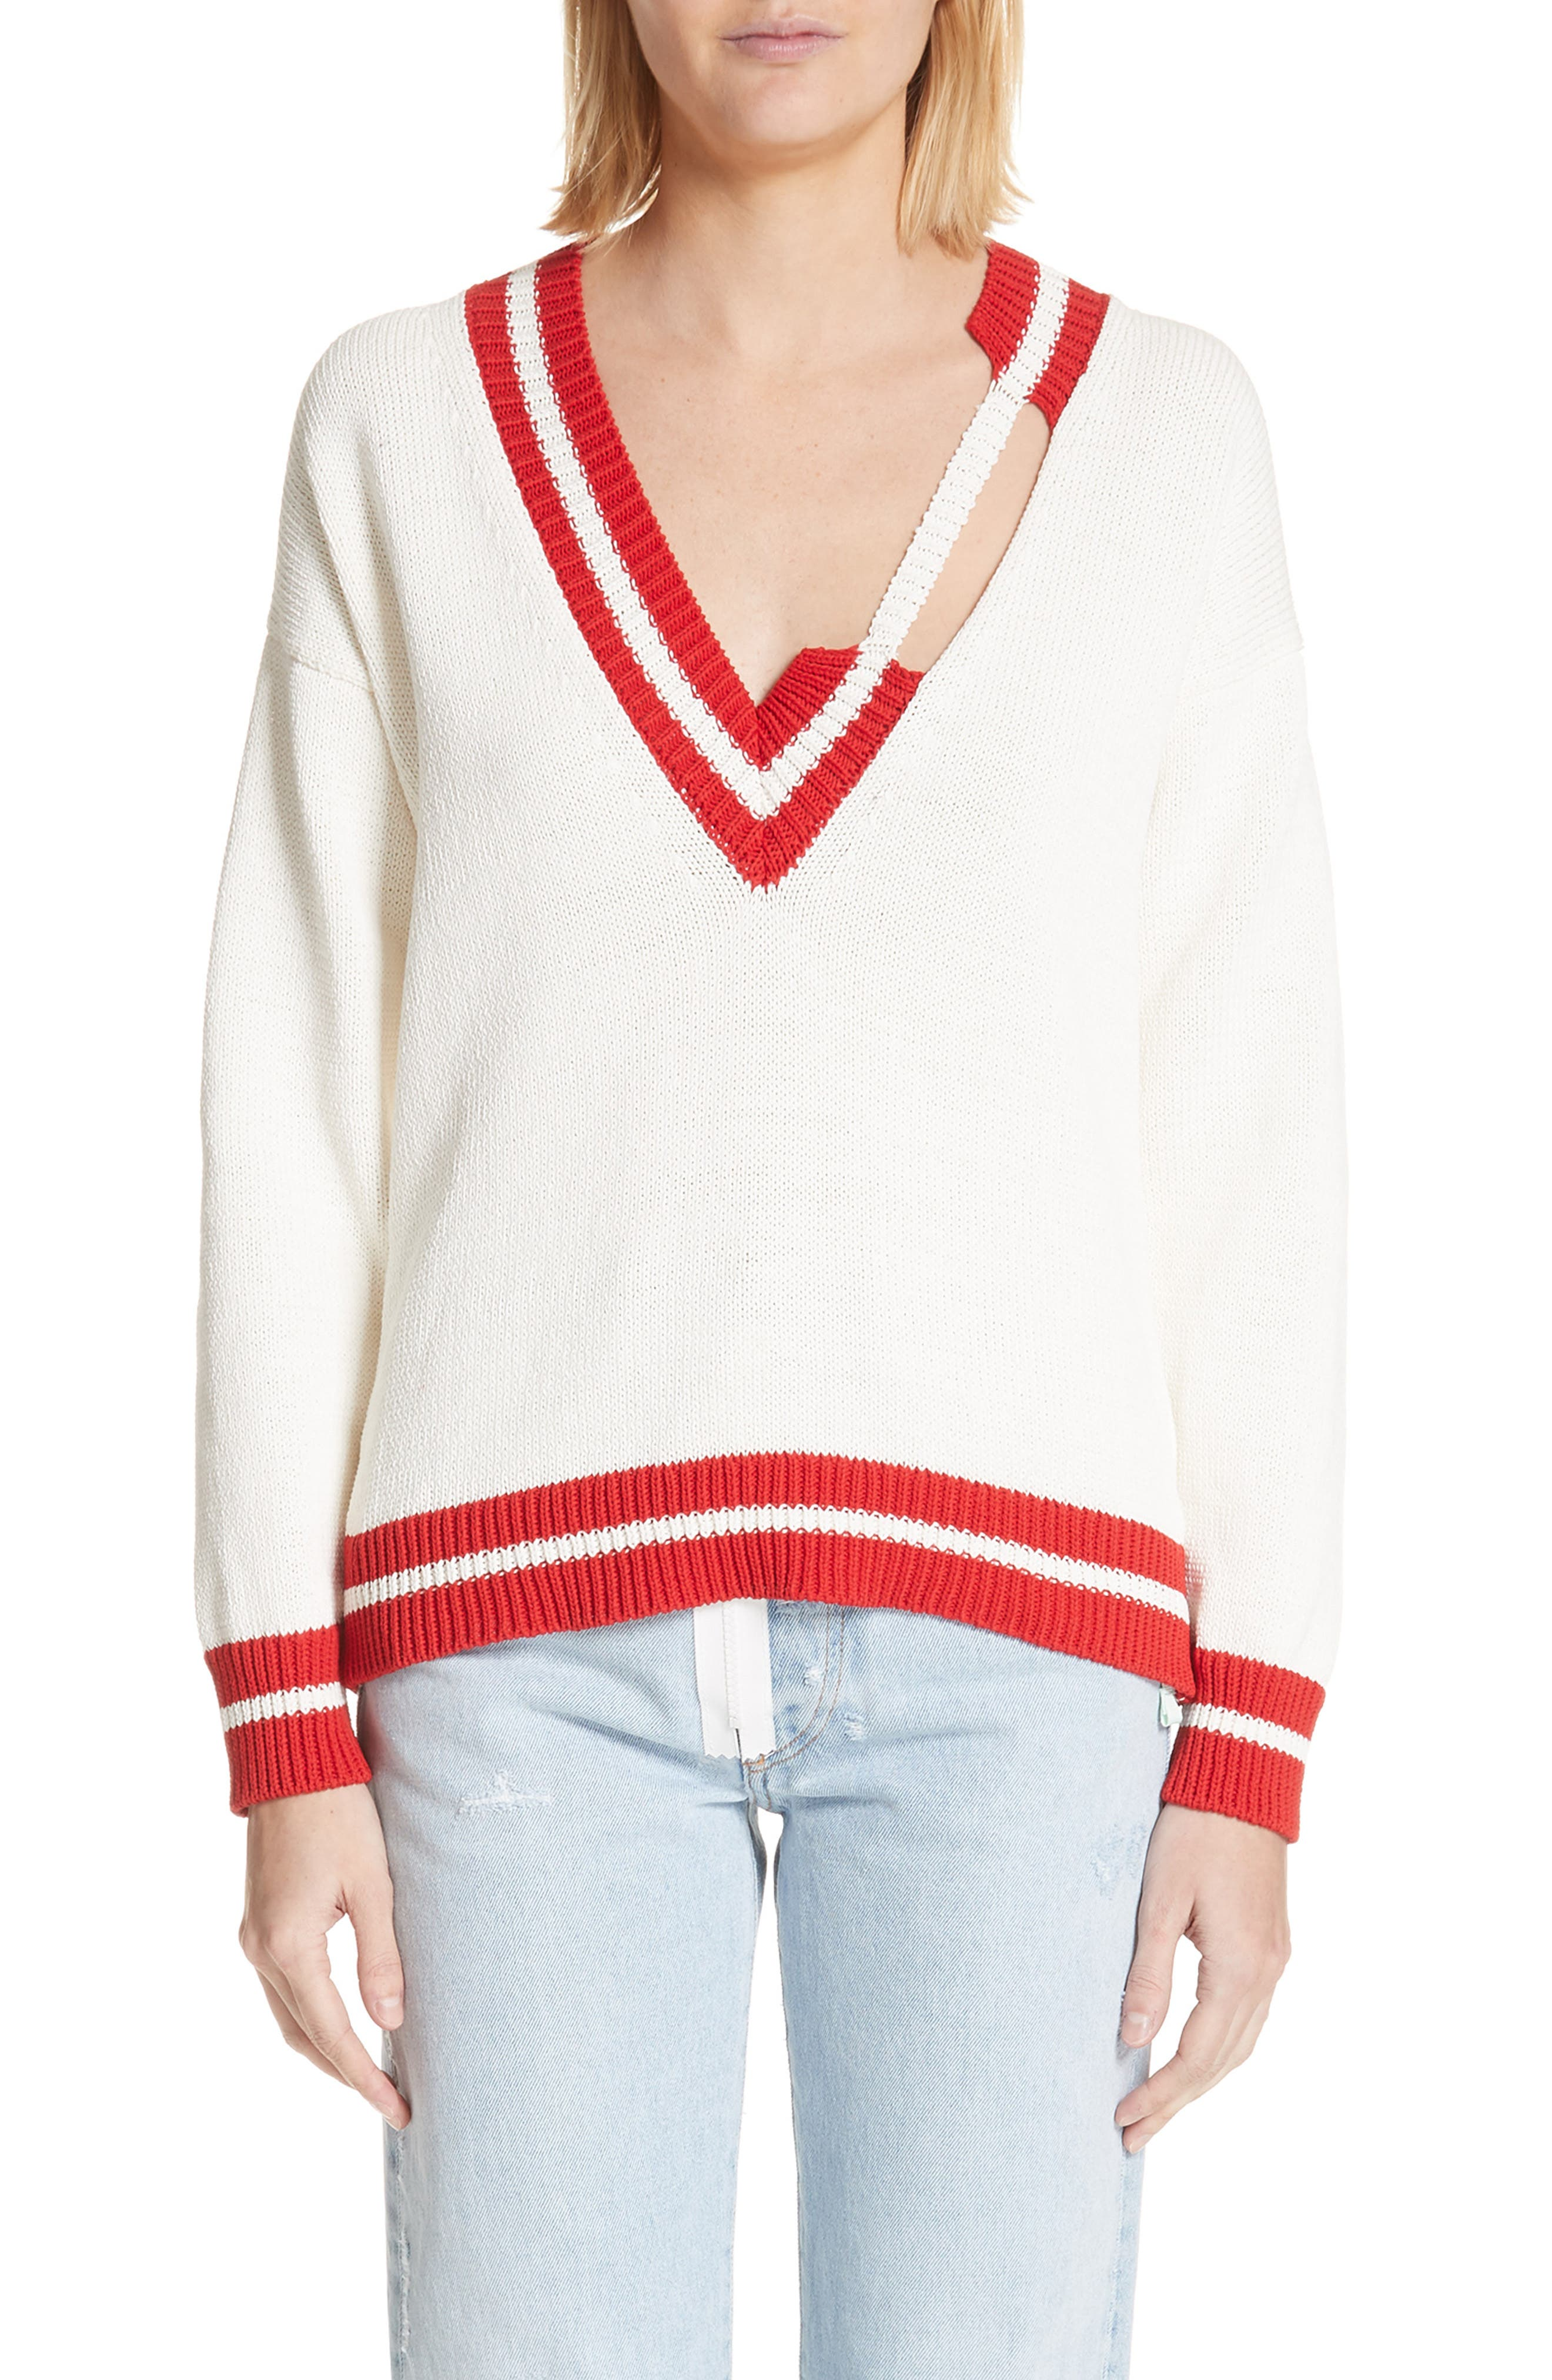 Off White Oversized Distressed Tennis Sweater Nordstrom